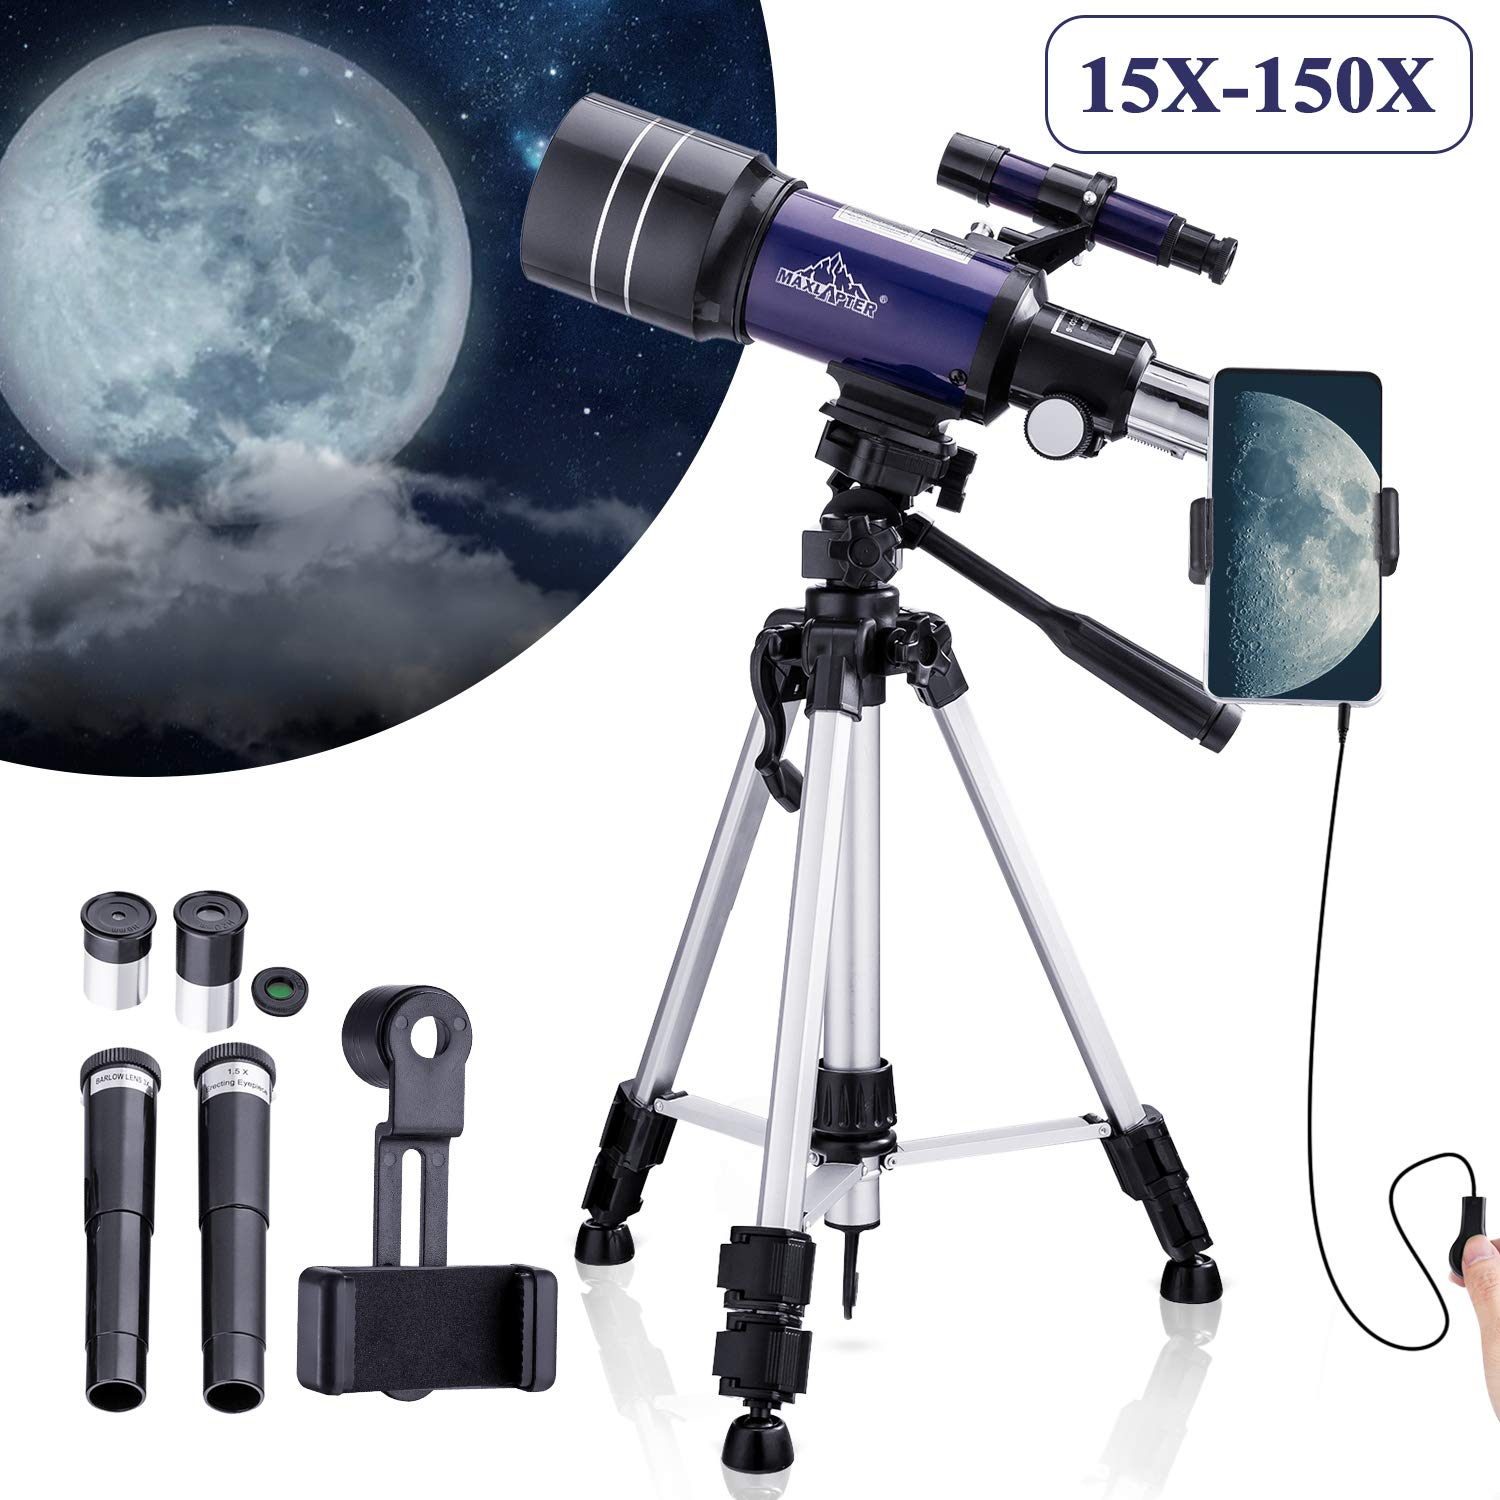 Smartphone Adapter … 400/70mm MAXLAPTER Telescopes for Astronomy for Kids and Teenagers Beginners Portable Equipped with Tripod